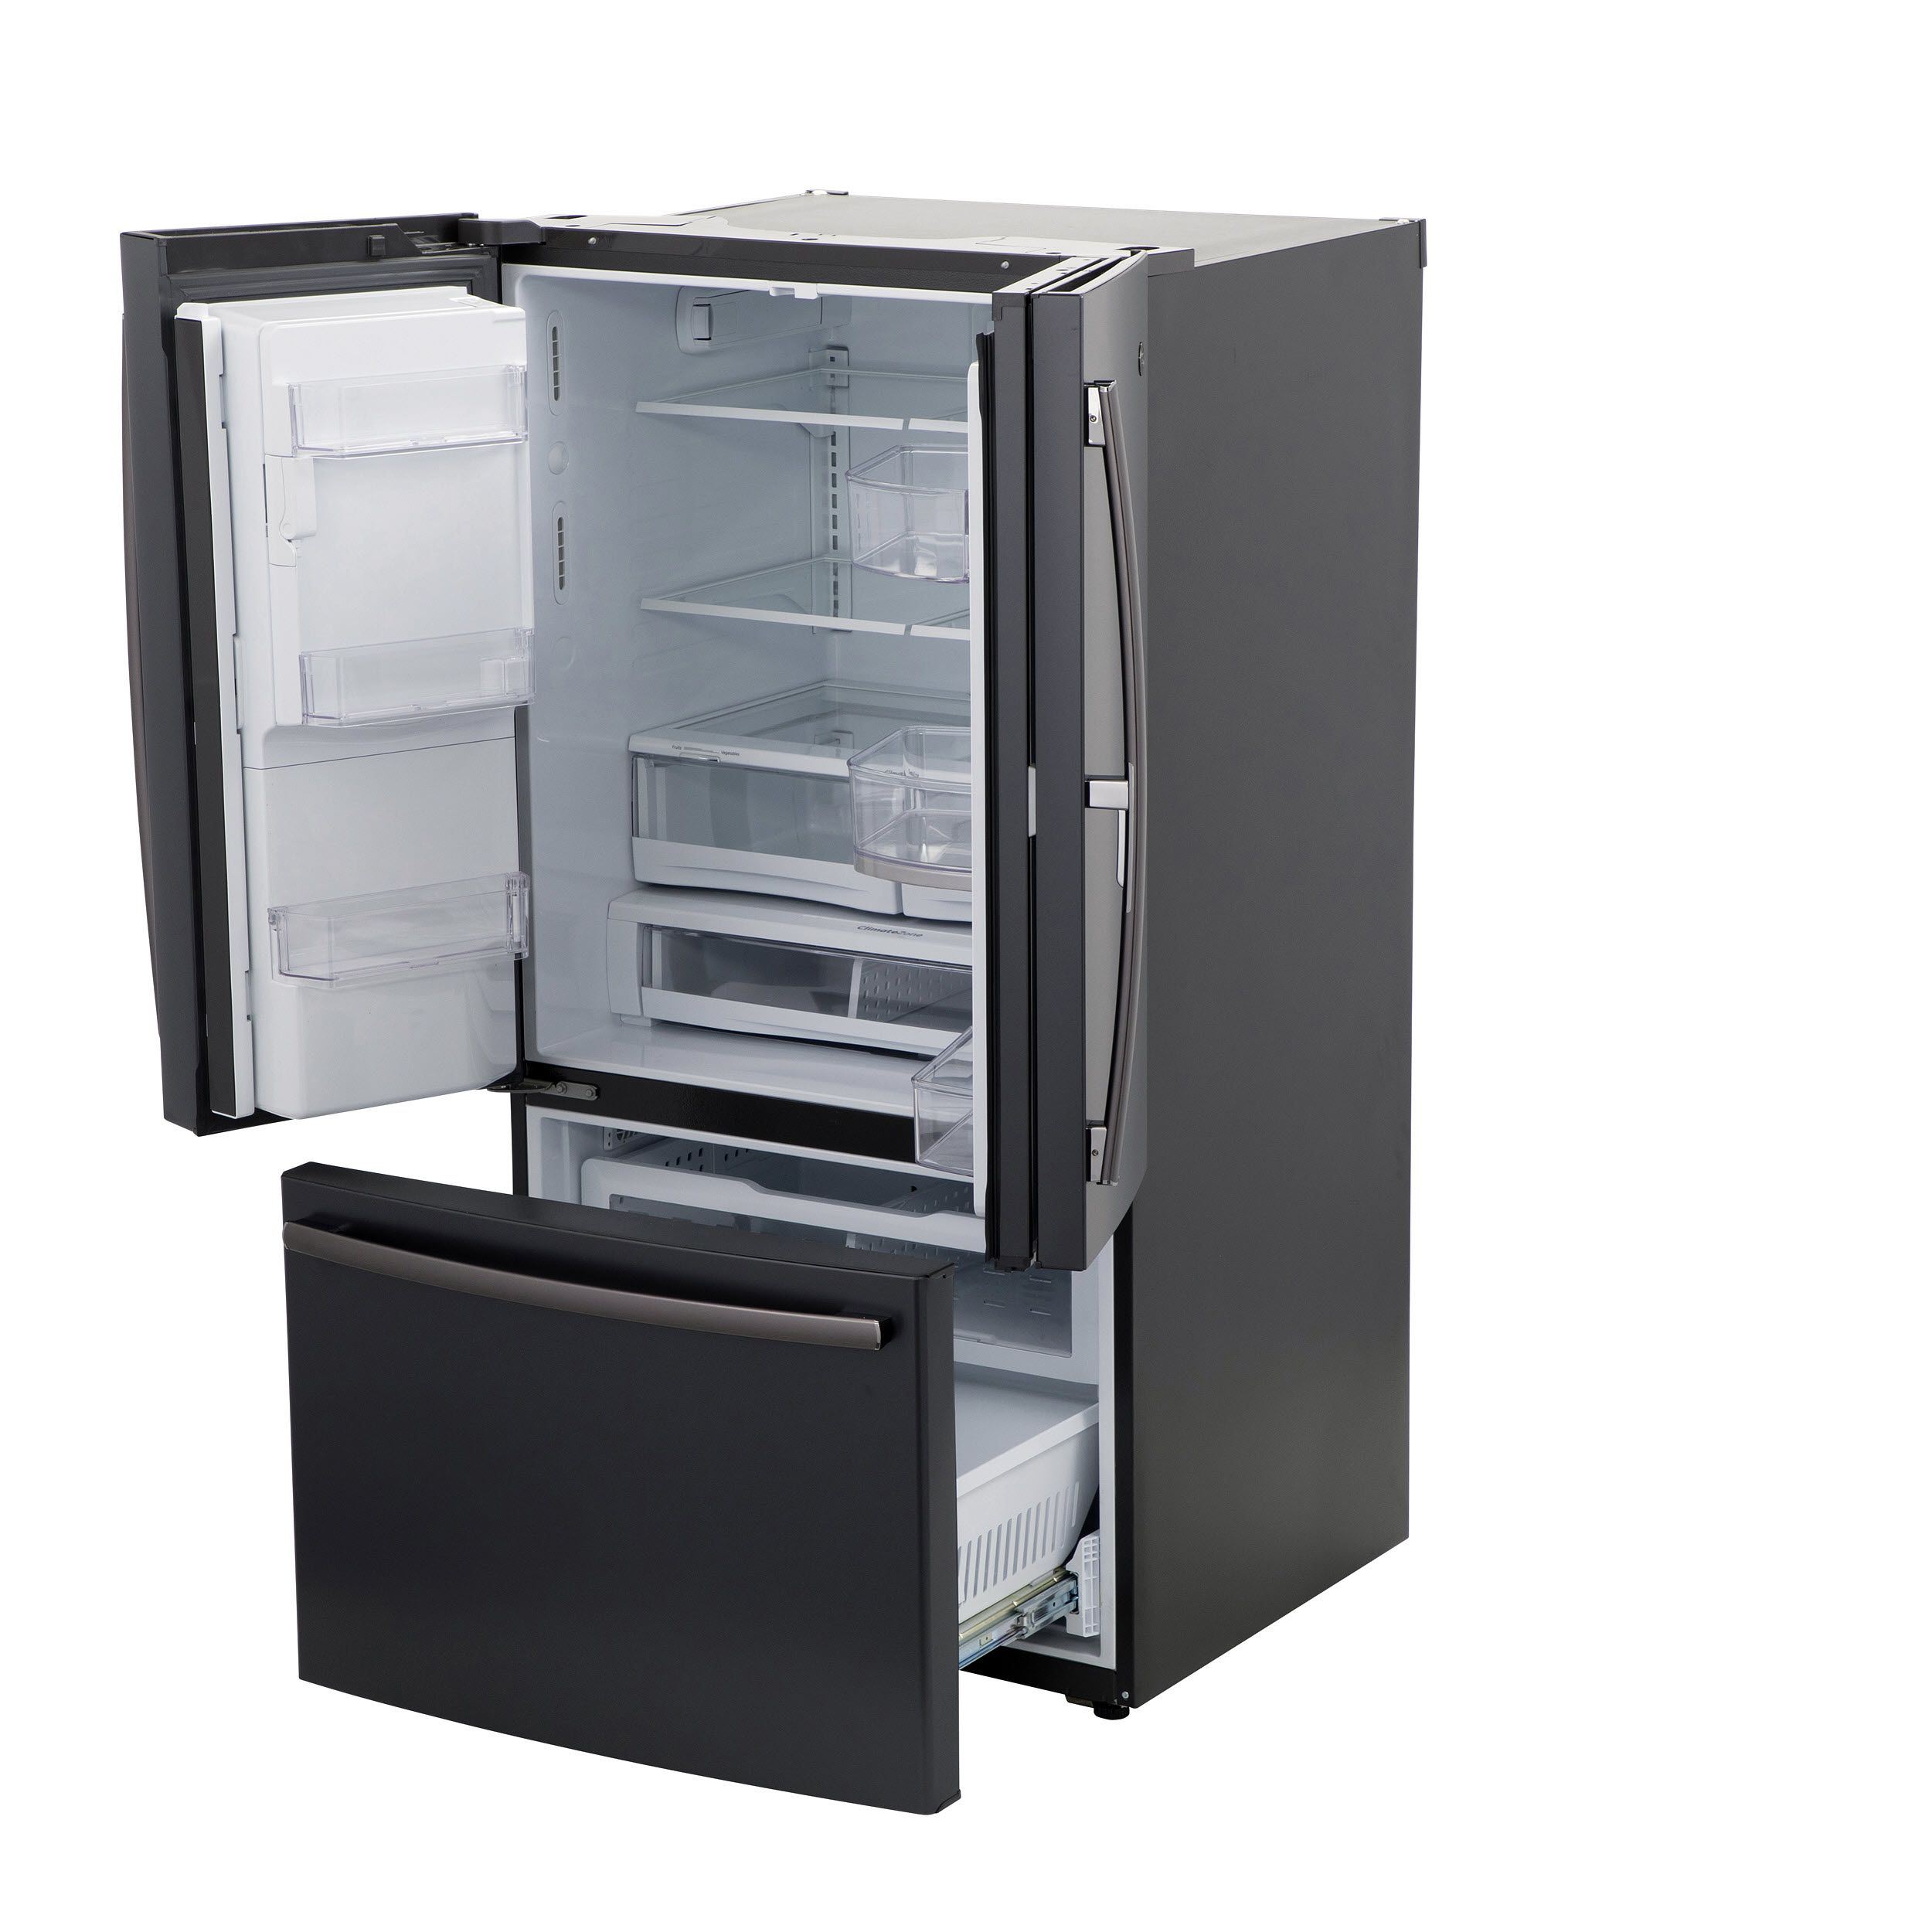 Model: GFD28GELDS | GE GE® 27.8 Cu. Ft. French-Door Refrigerator with Door In Door